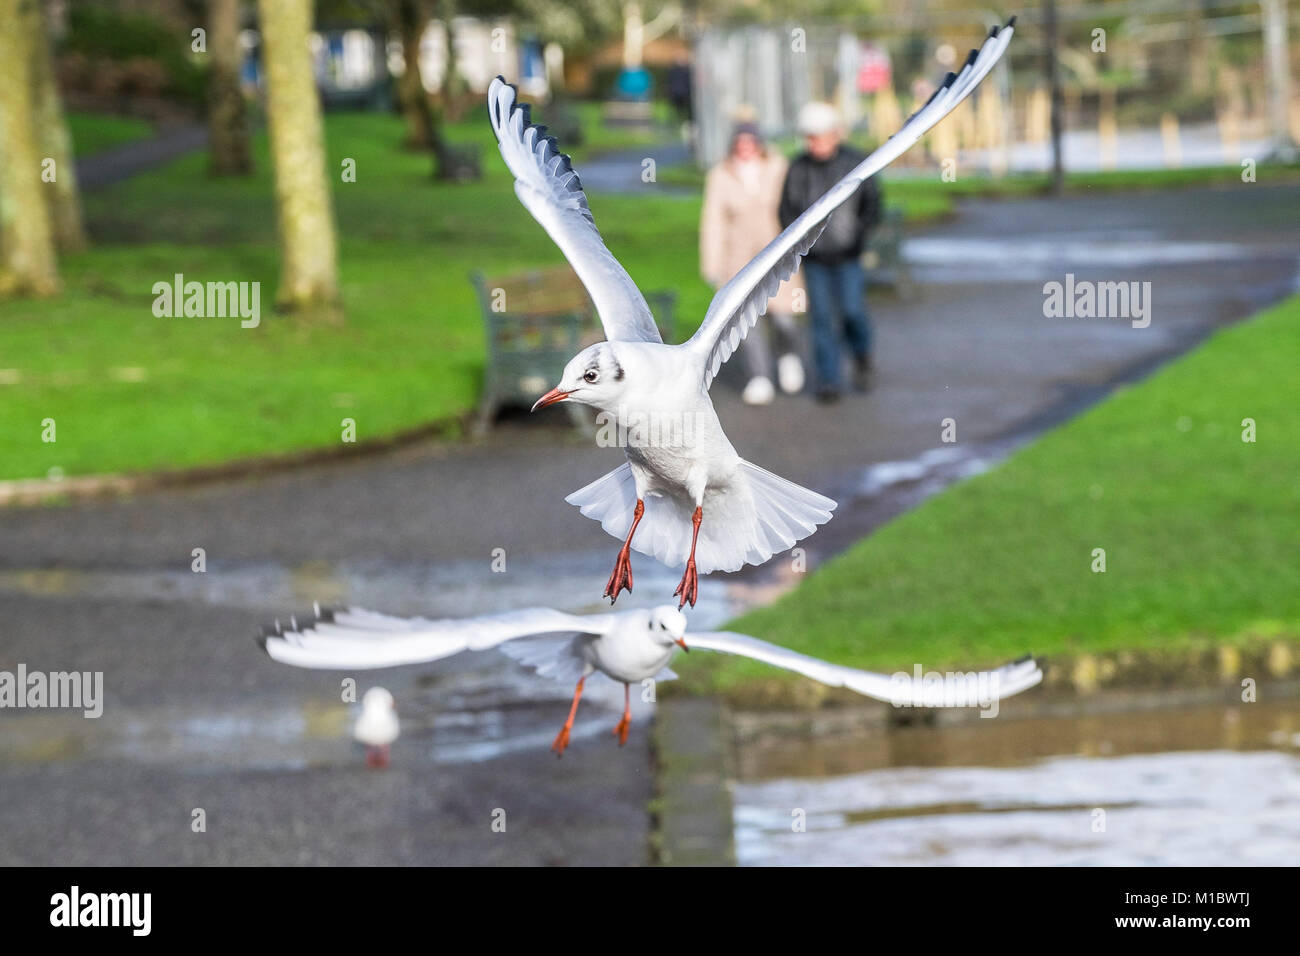 Seagulls Laridae flying in a park. - Stock Image